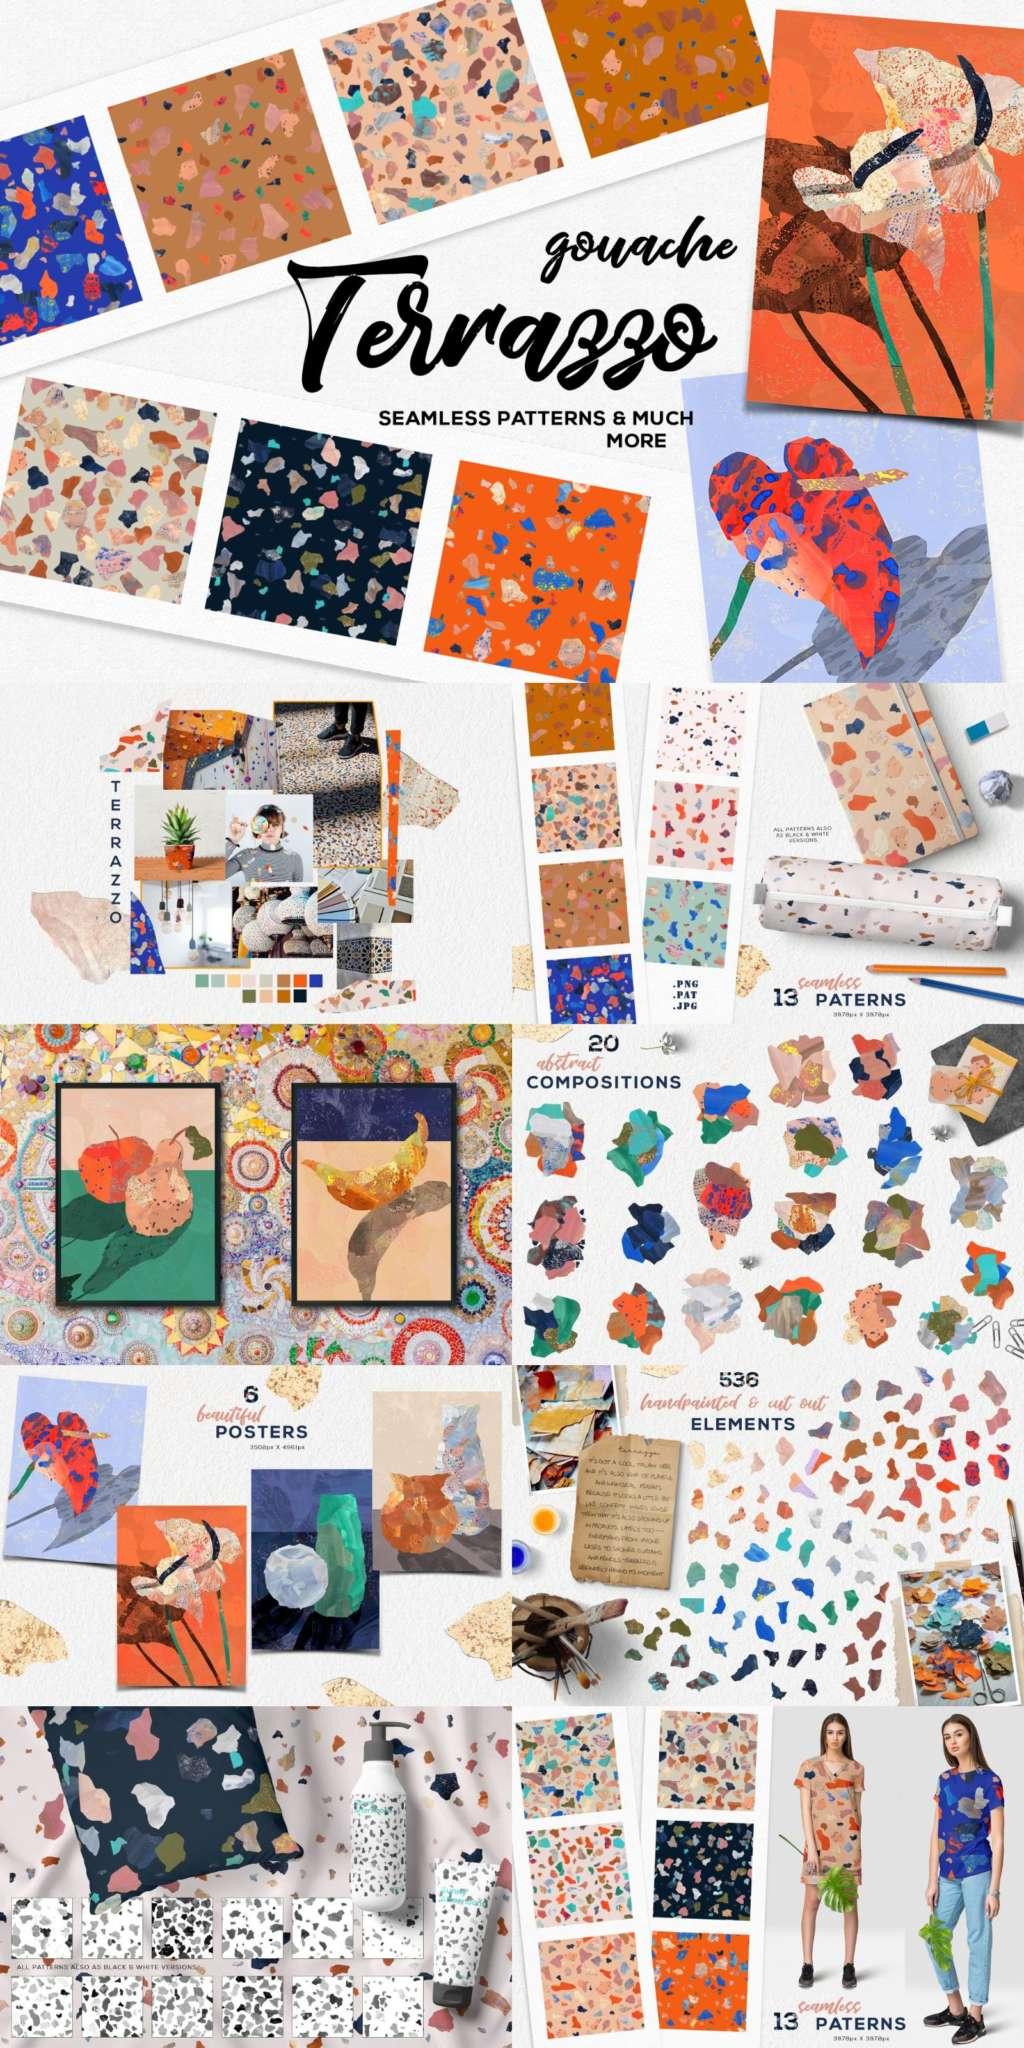 Terrazzo Gouache Graphic Set – patterns, posters, compositons, backdrops